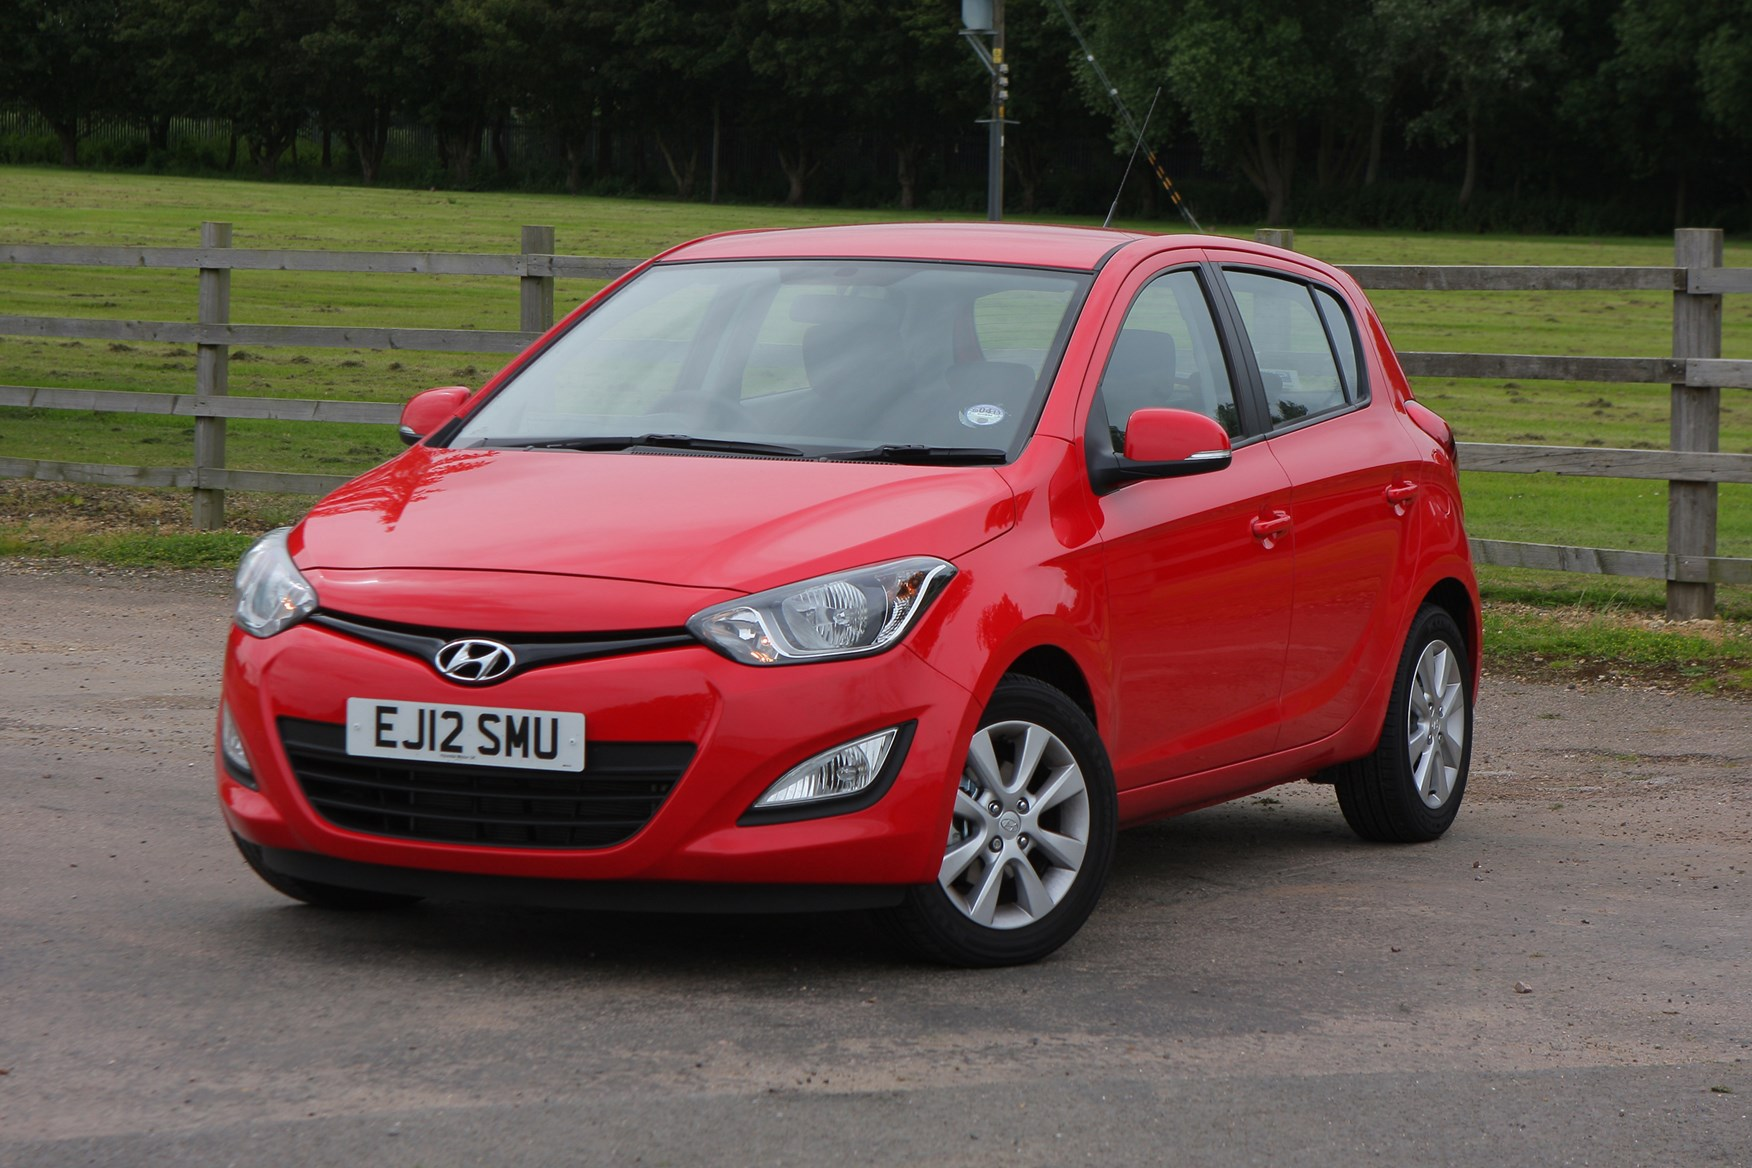 hyundai i20 hatchback review 2009 2014 parkers. Black Bedroom Furniture Sets. Home Design Ideas